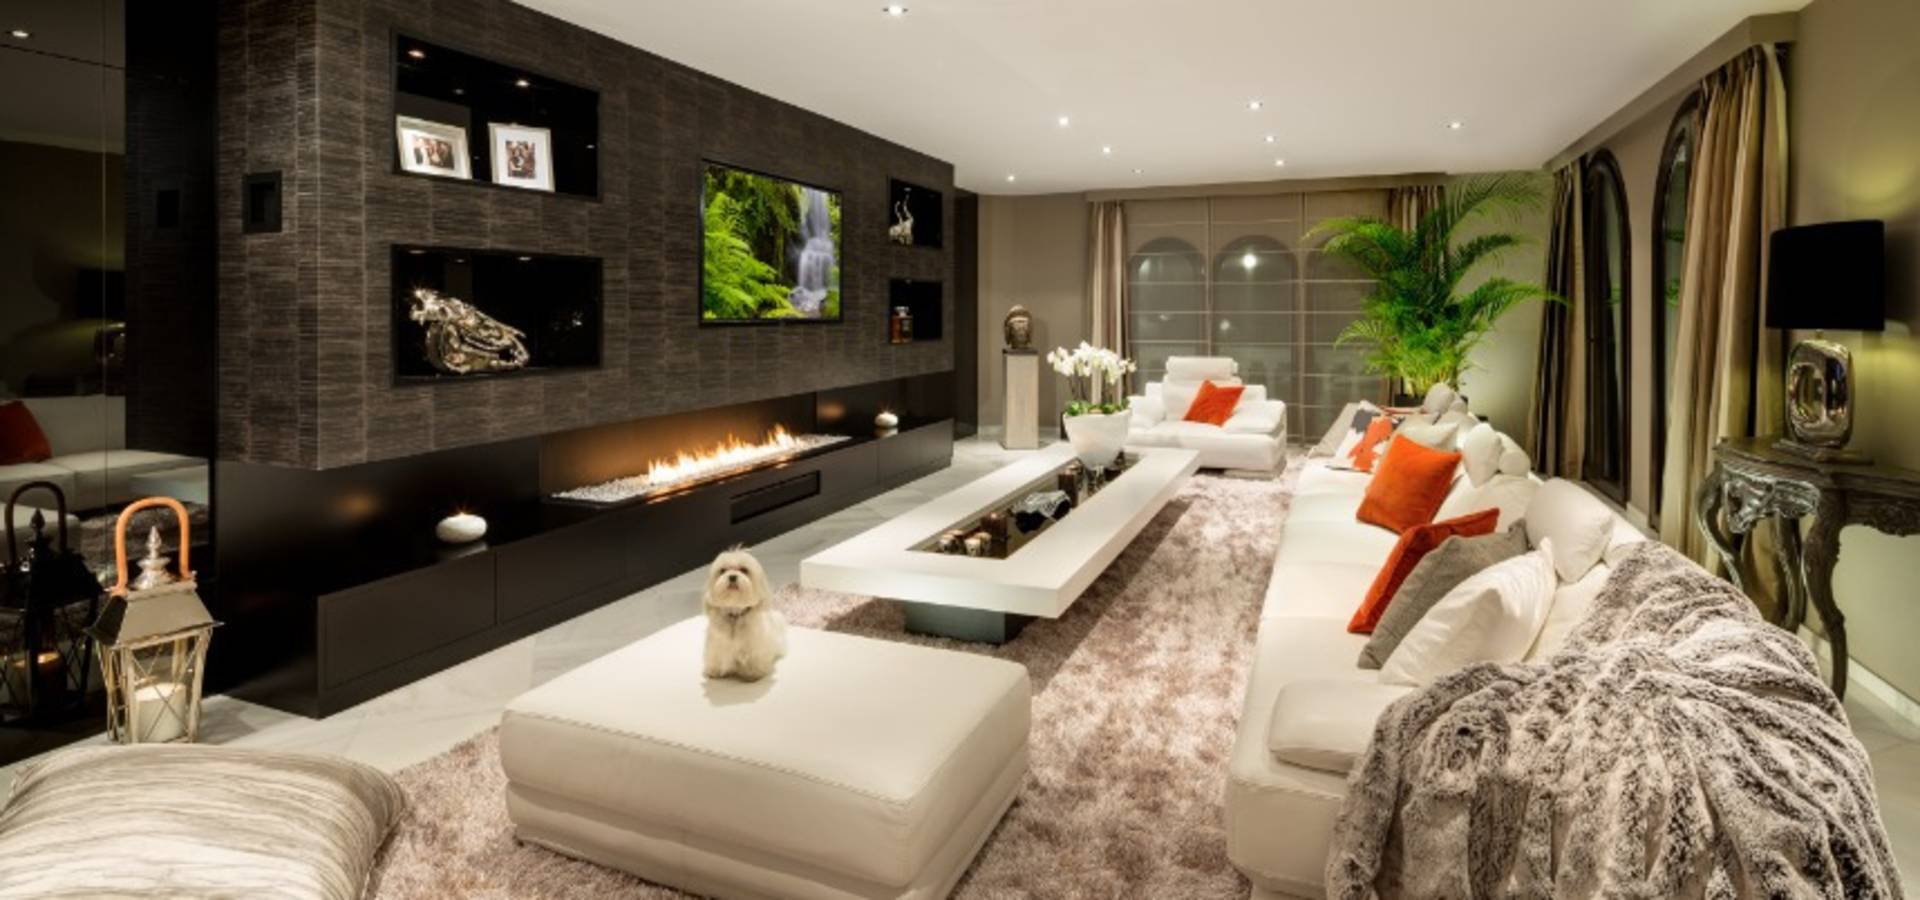 Homify - Ambience home design marbella ...